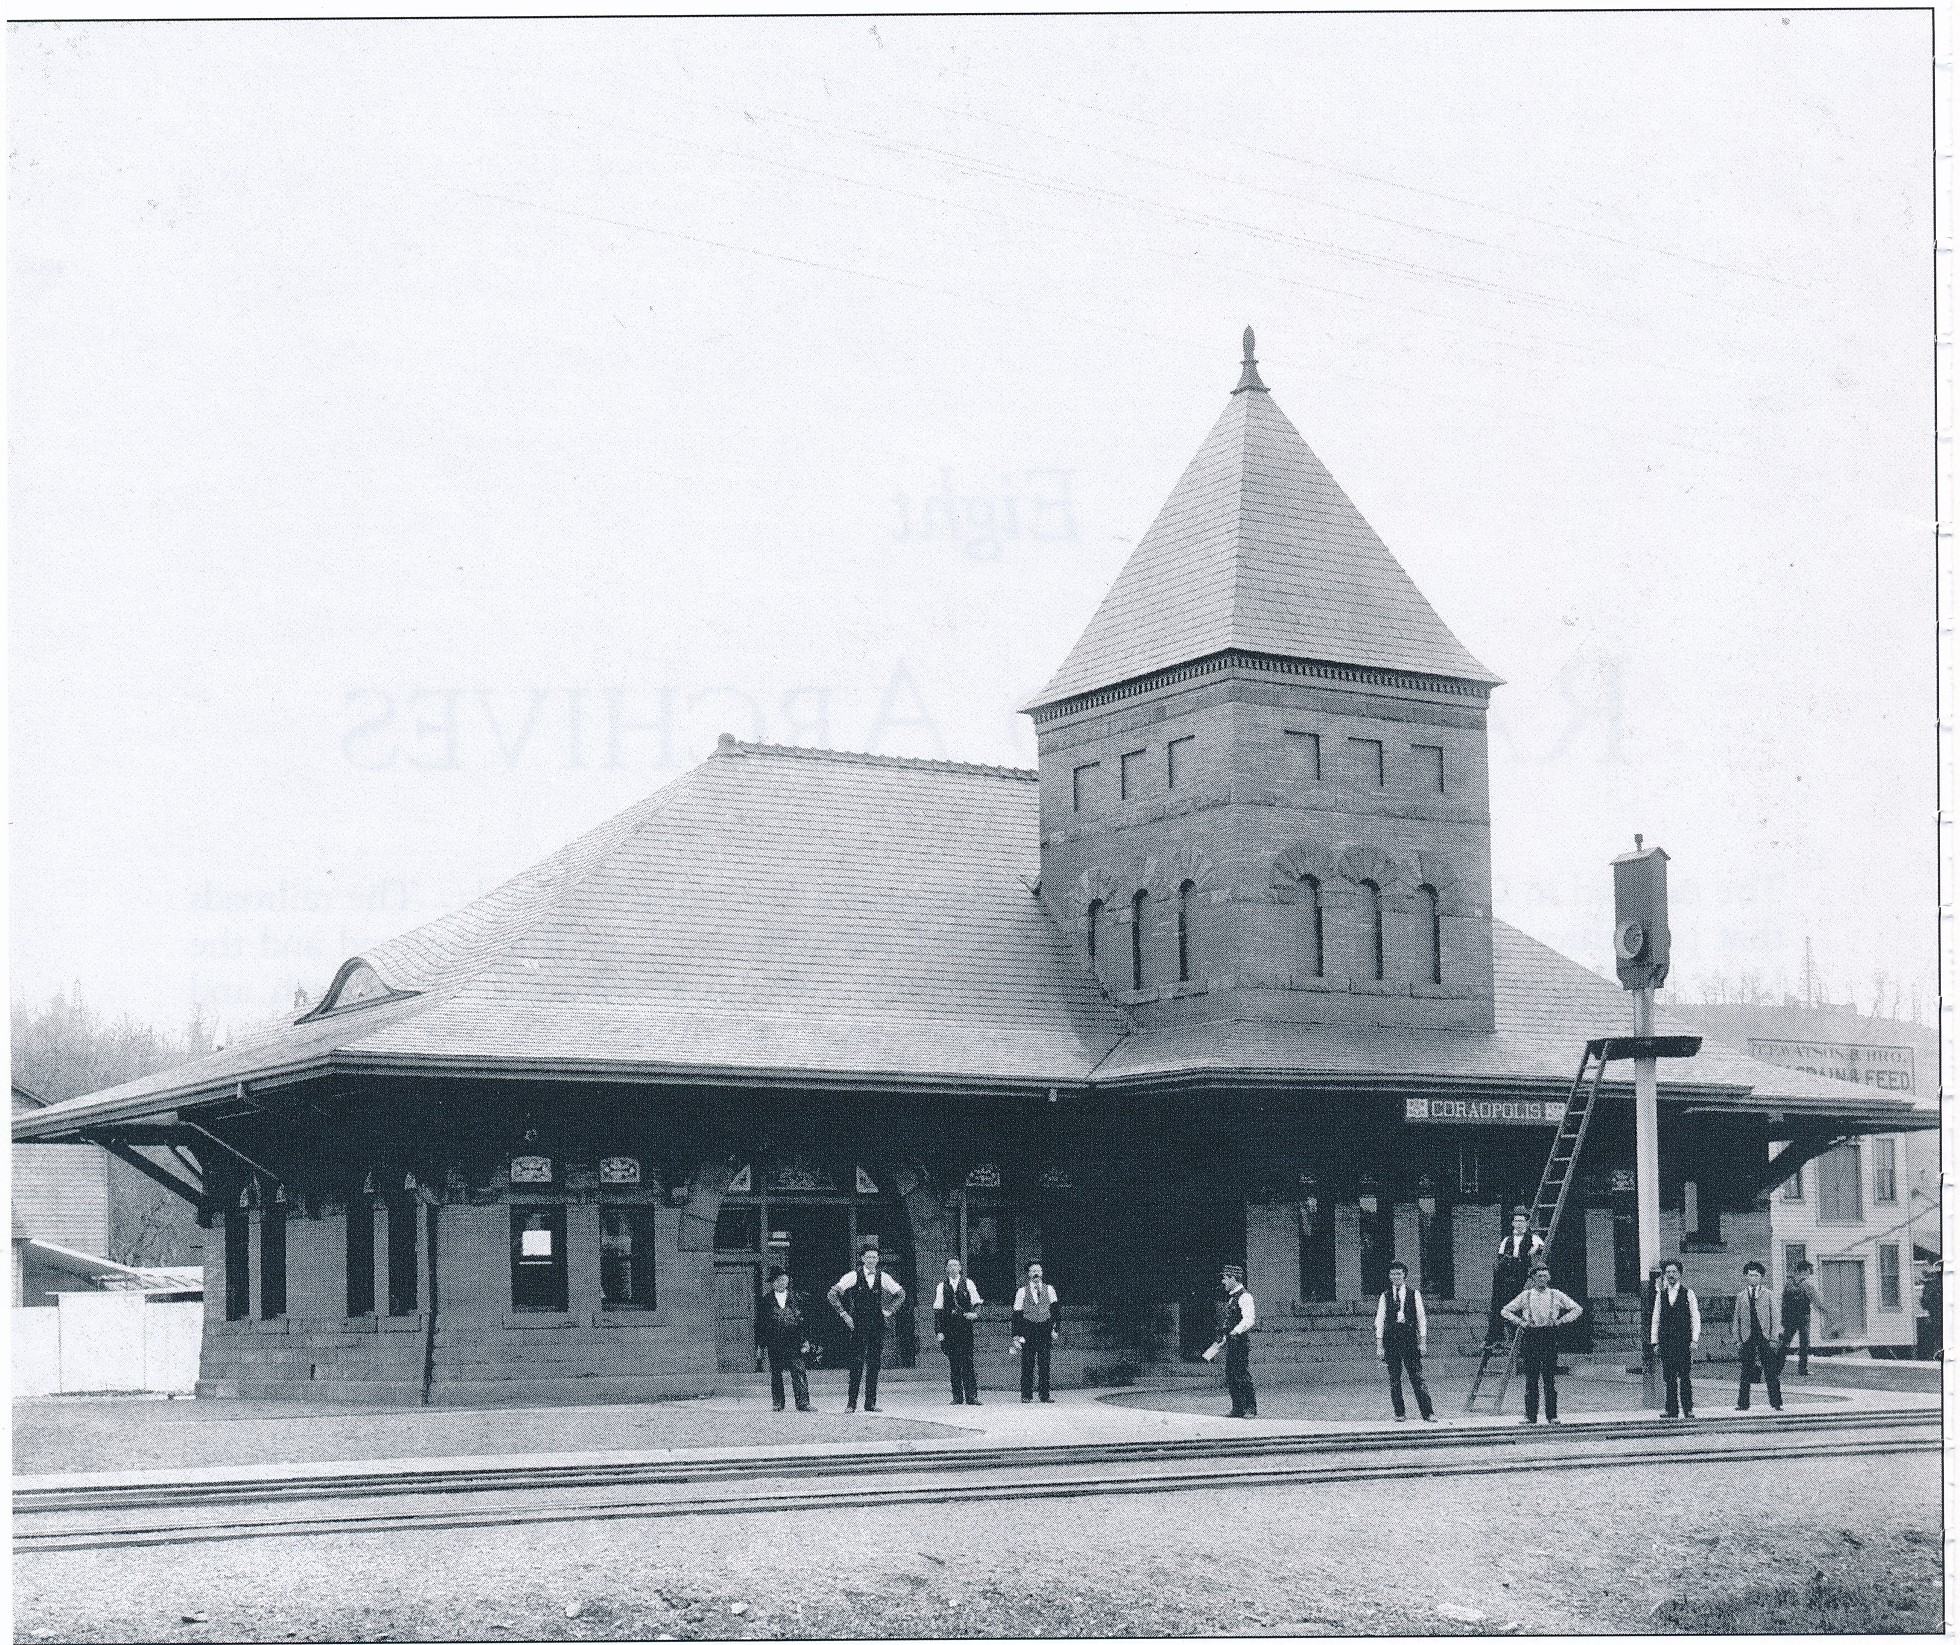 1890s Coraopolis Passenger Train Station - PLERR - late 1800s.jpg